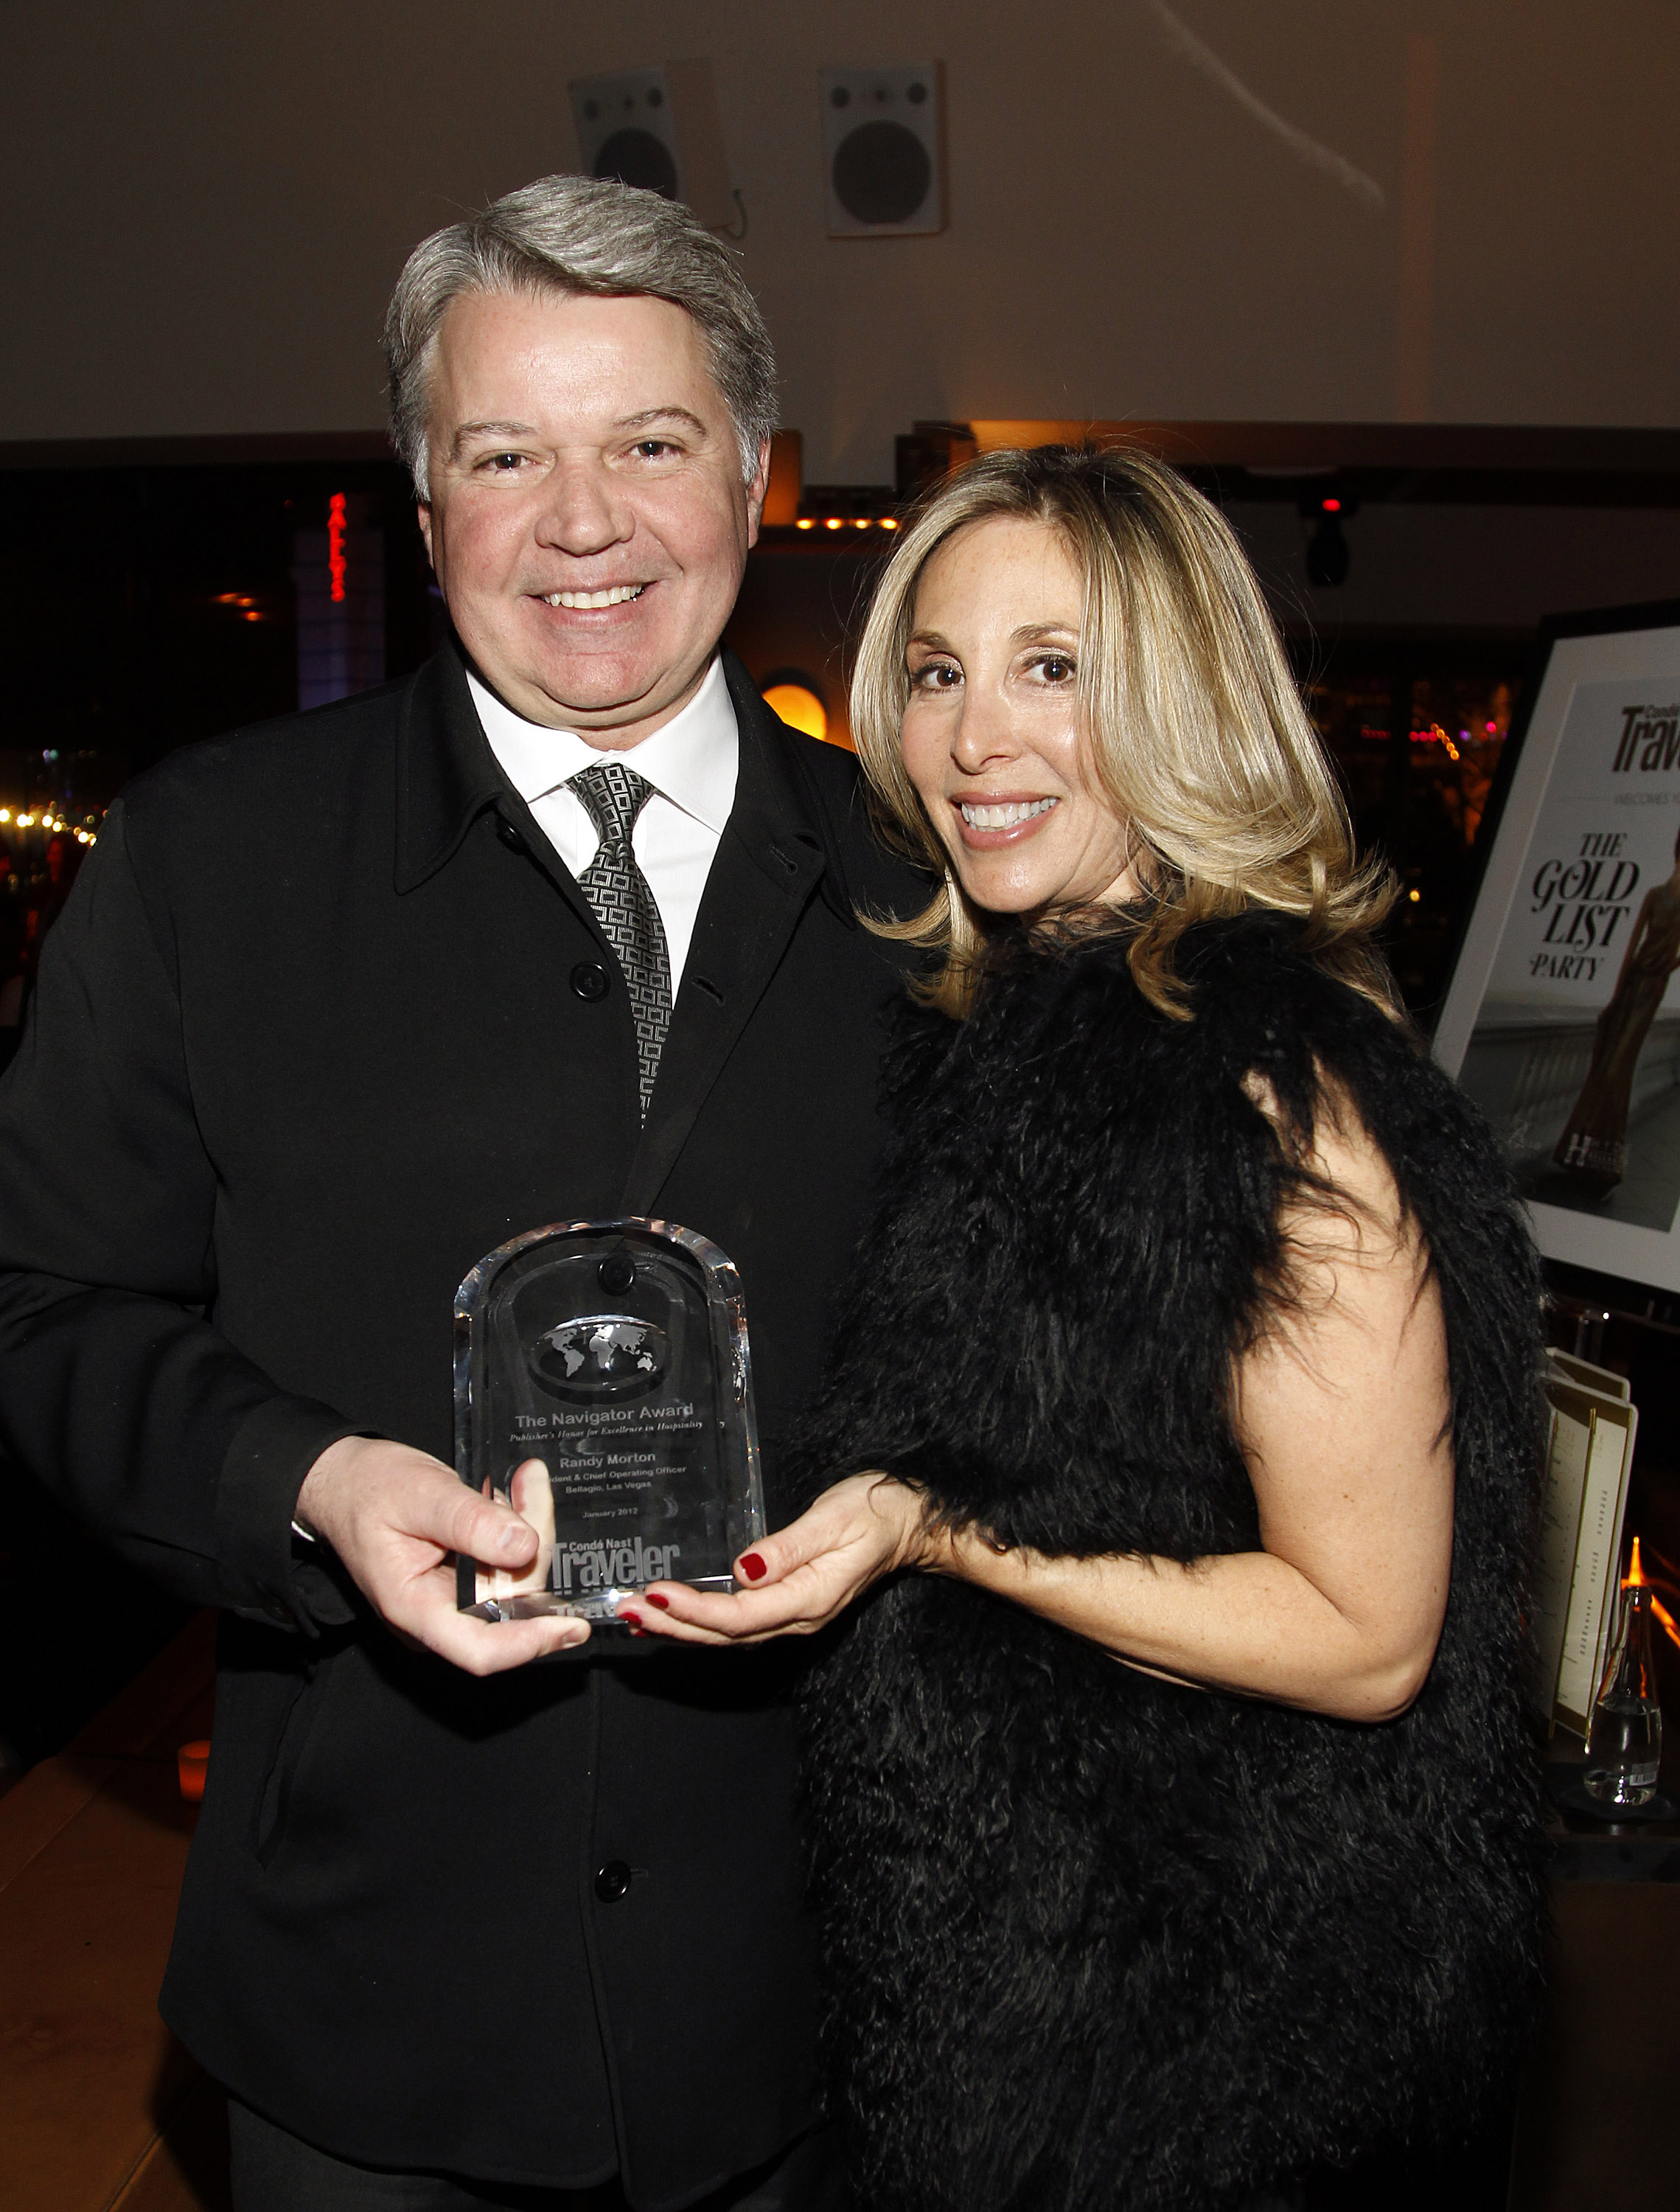 Bellagio President & COO Randy Morton accepts Navigator Award from Conde Nast Traveler Vice President and Publisher Carolyn Kremins on January 21, 2012.